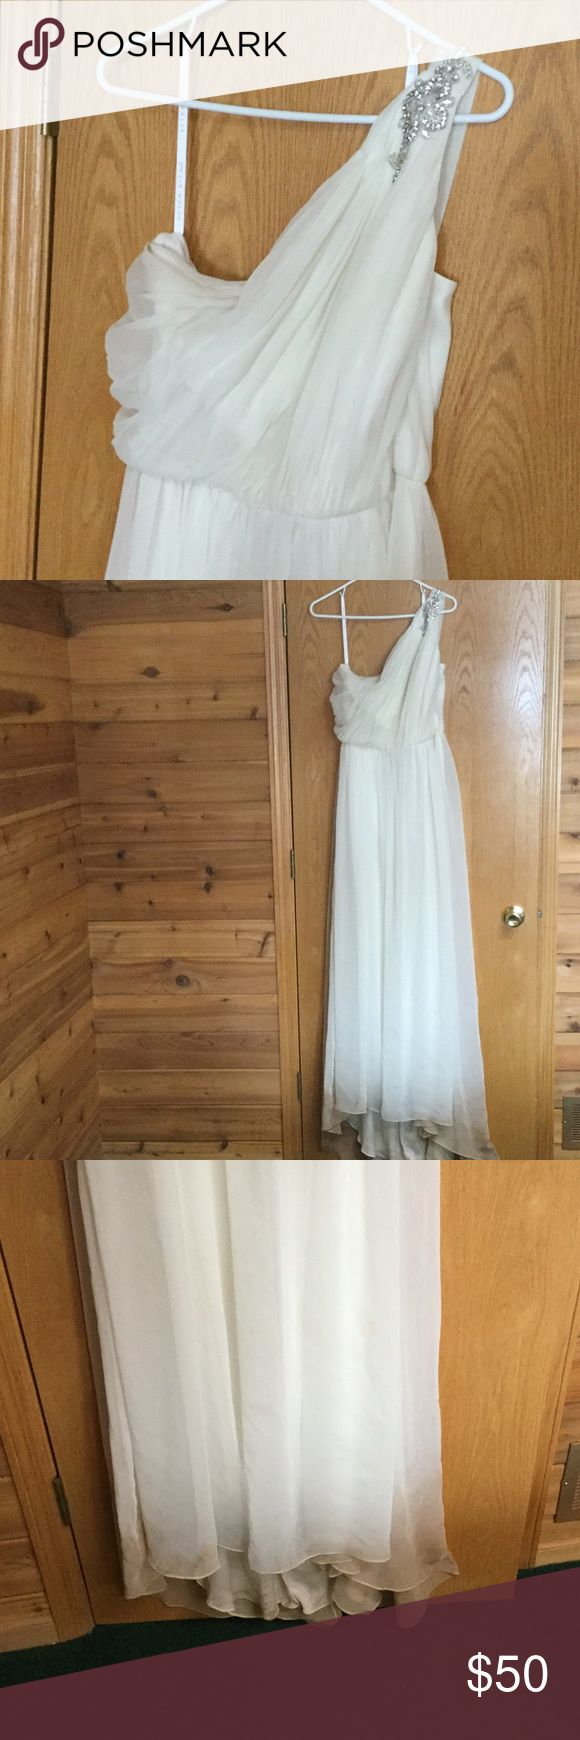 One shoulder wedding gown Beautiful wedding gown, off-white, simple and lightweight, I used as my second dress - worn once for a few hours, gorgeous crystal details on shoulder, very comfortable and flattering. Needs to be cleaned - bottom. See pictures after six bride Dresses Wedding